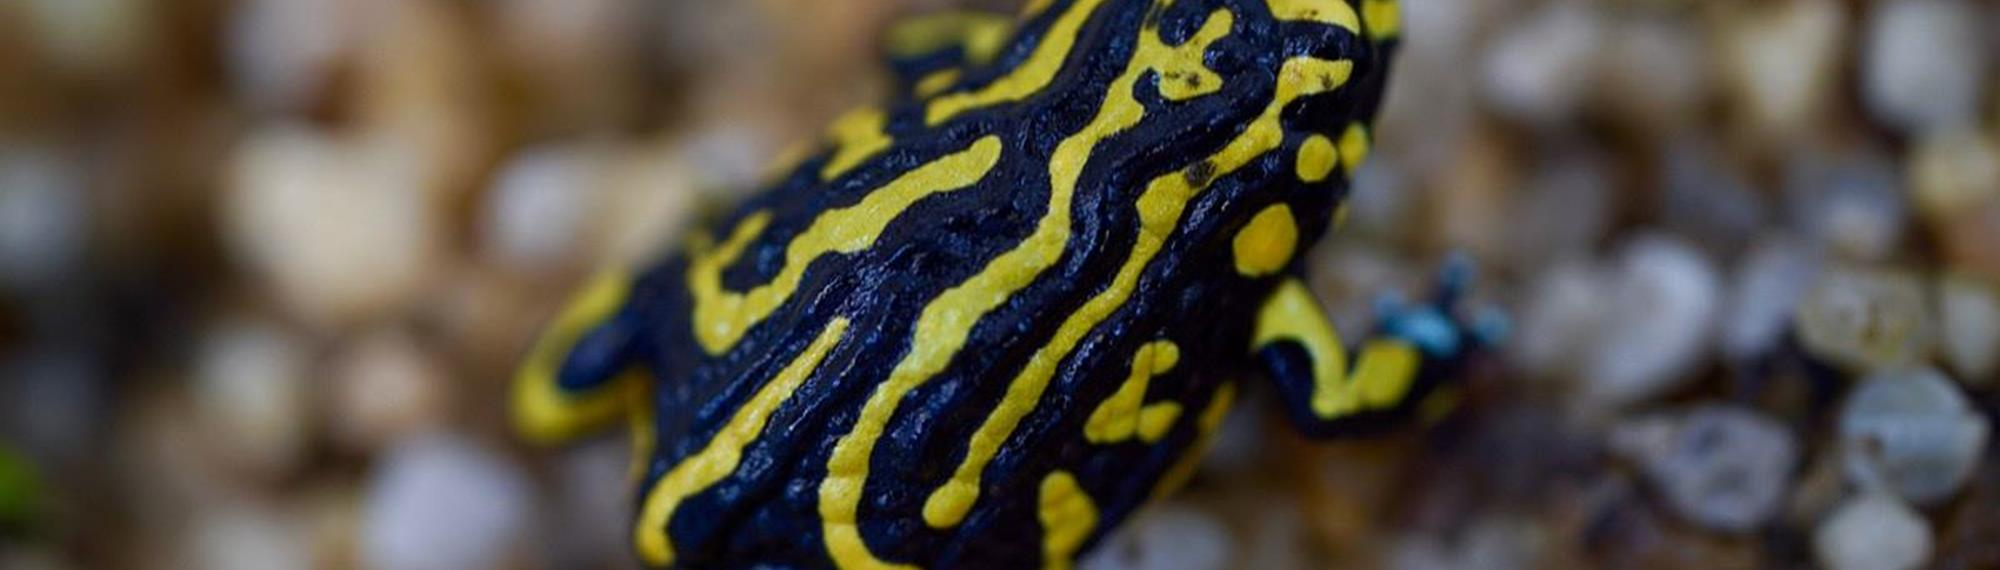 Northern Corroboree Frog with its vivid yellow and black stripes sitting on wet pebbles.